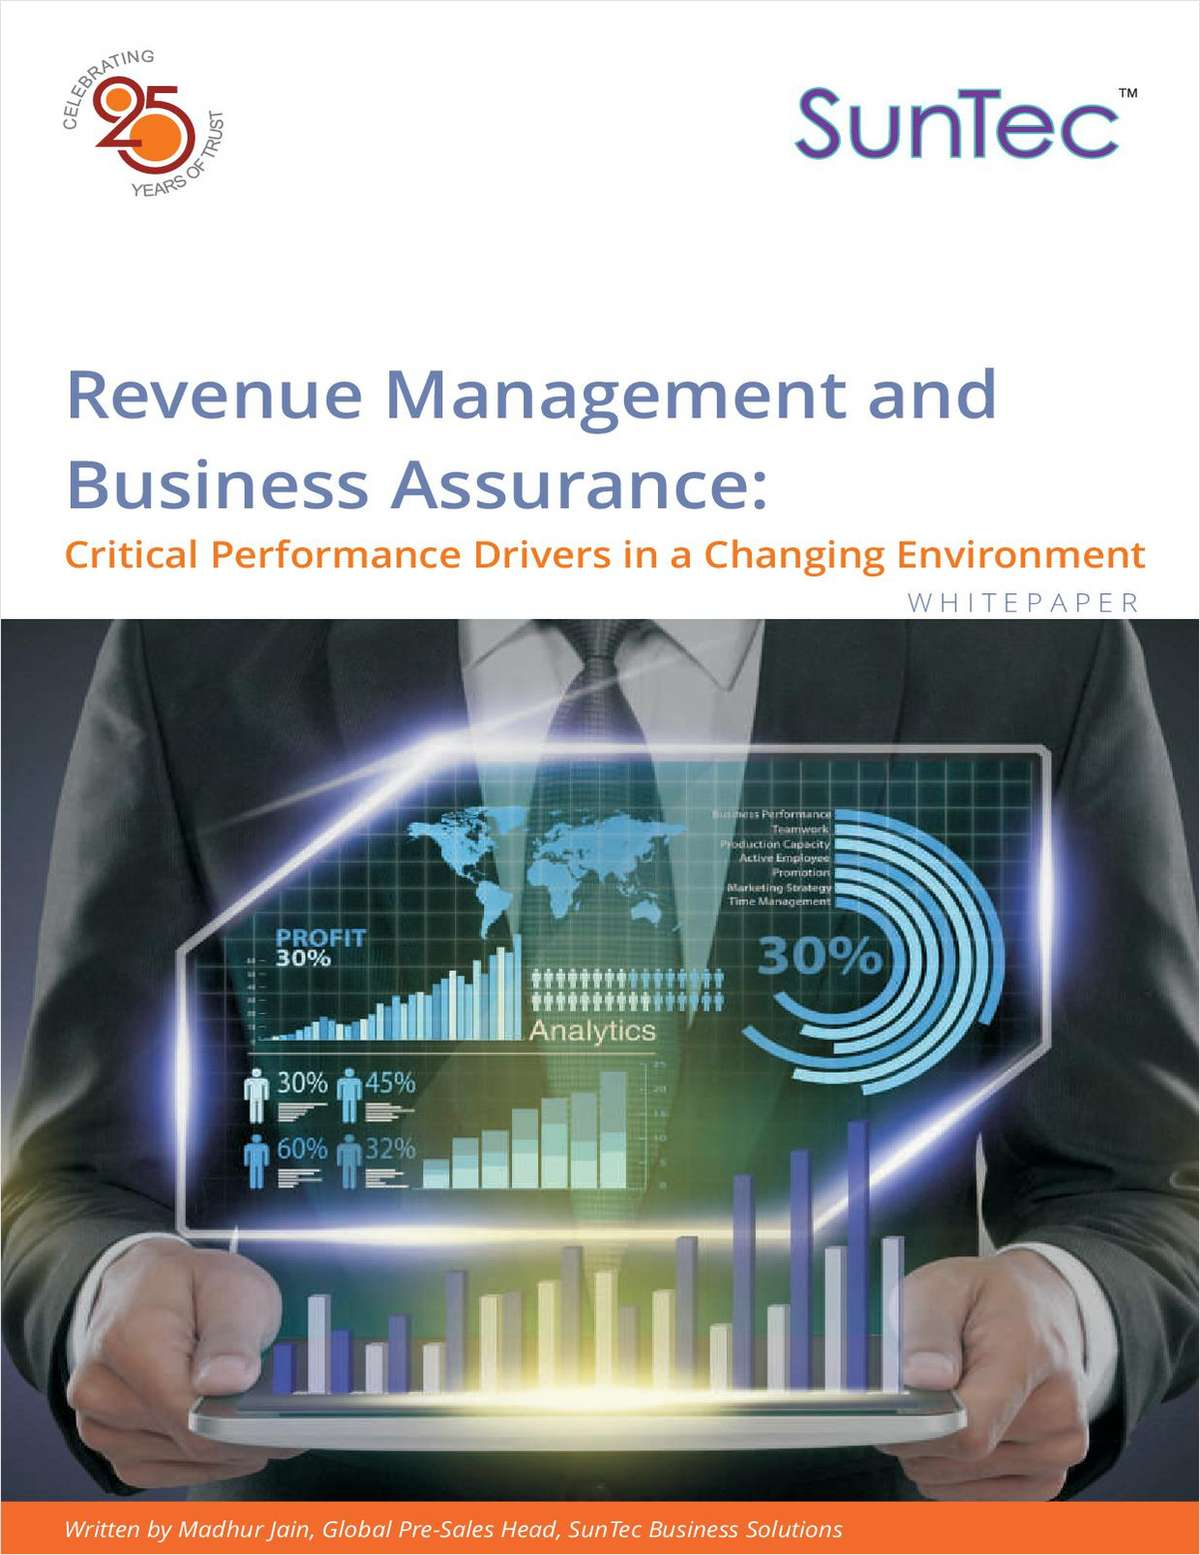 Revenue Management and Business Assurance in Financial Services: Critical Performance Drivers in a Changing Environment